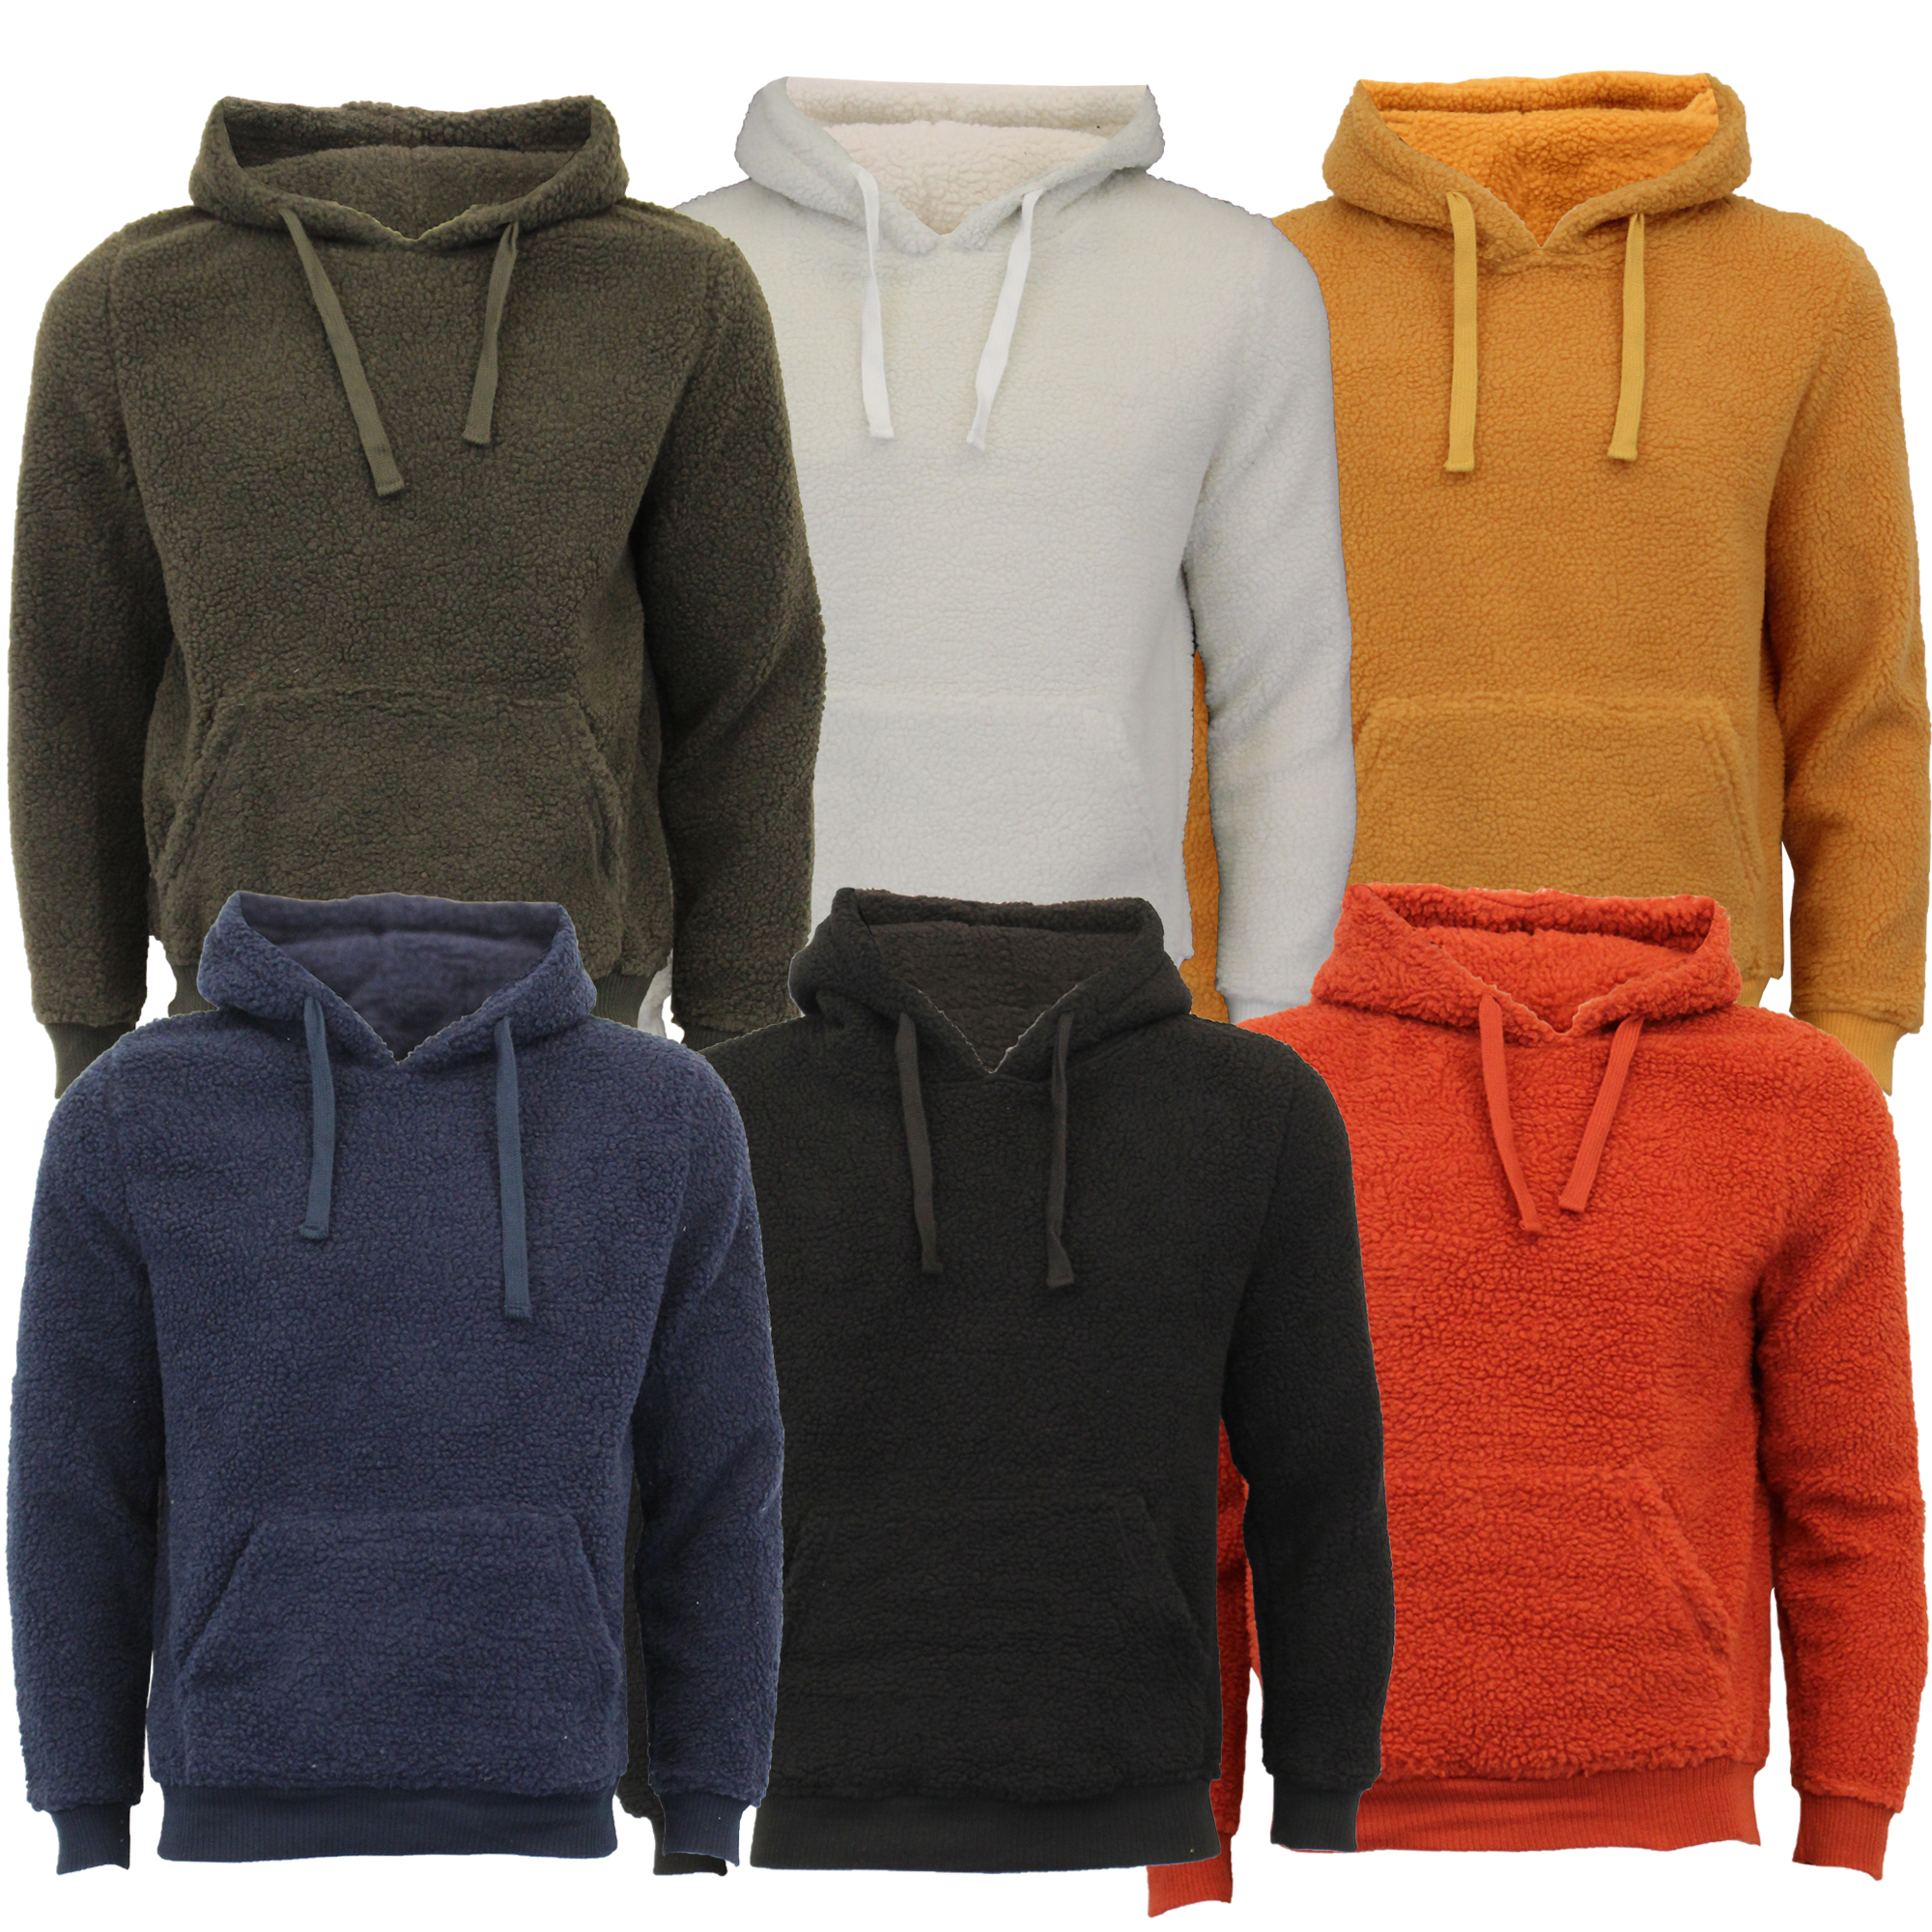 Mens-Sherpa-Fleece-Borg-Sweatshirt-Brave-Soul-Over-The-Head-GROMIT-Hooded-Top thumbnail 9